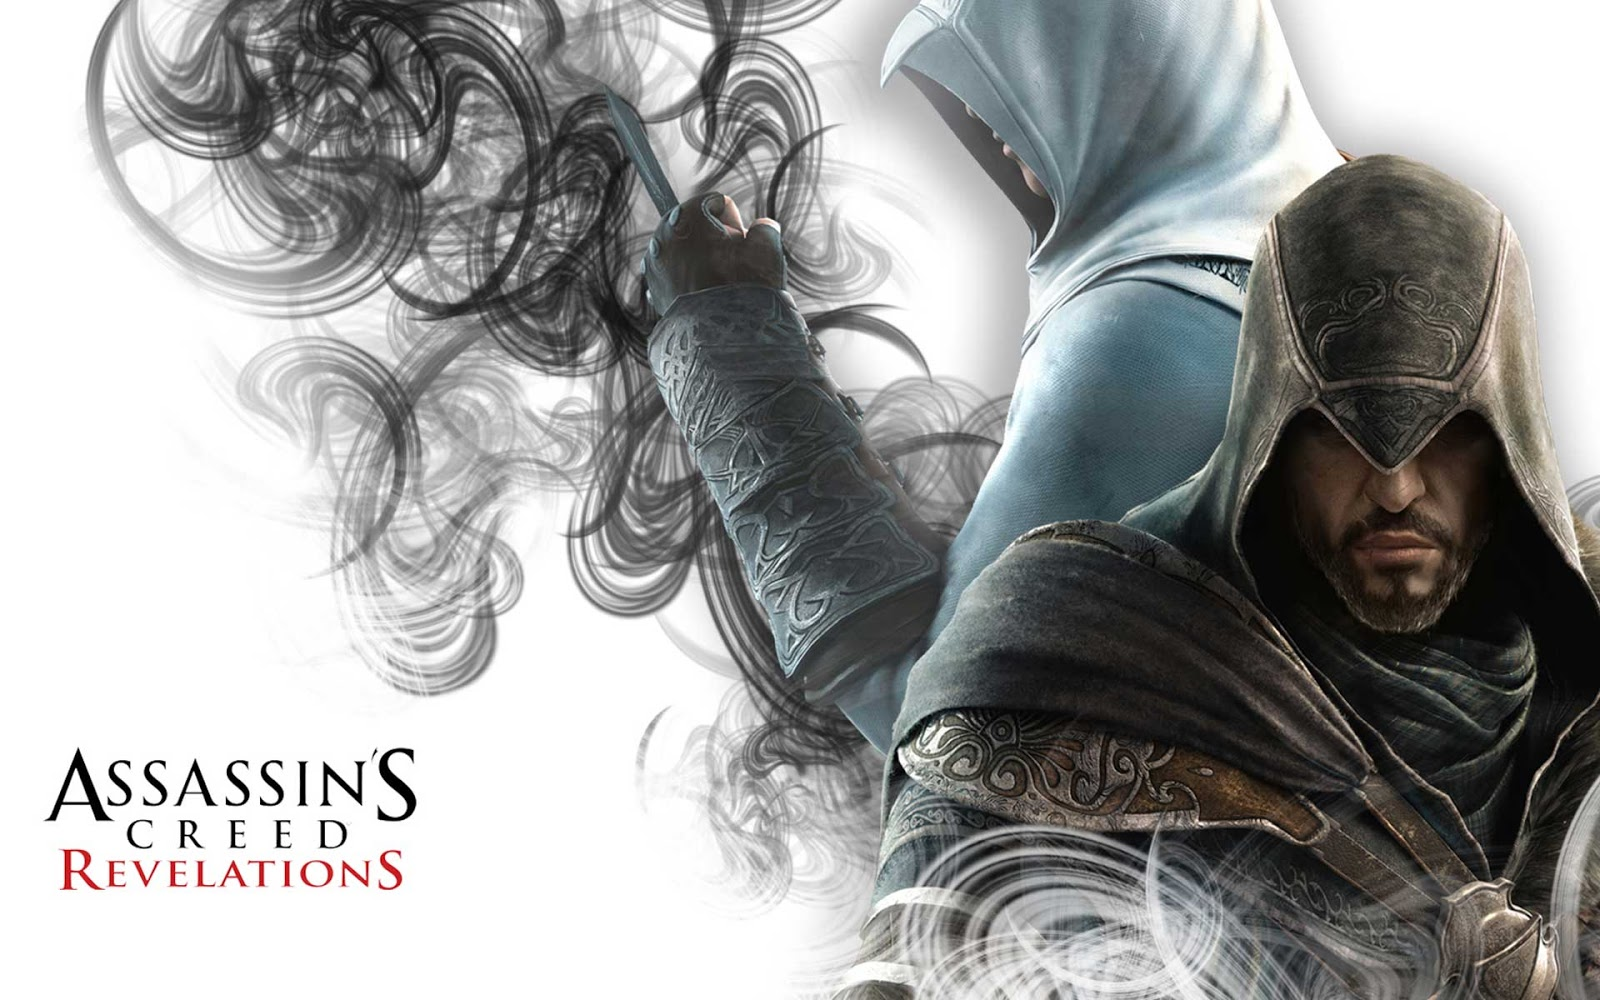 http://1.bp.blogspot.com/-z2RniM8Tiuo/UQFAlnvP8KI/AAAAAAAAAPU/SnnR--vWcG4/s1600/assassins_creed_revelations_wallpaper.jpg